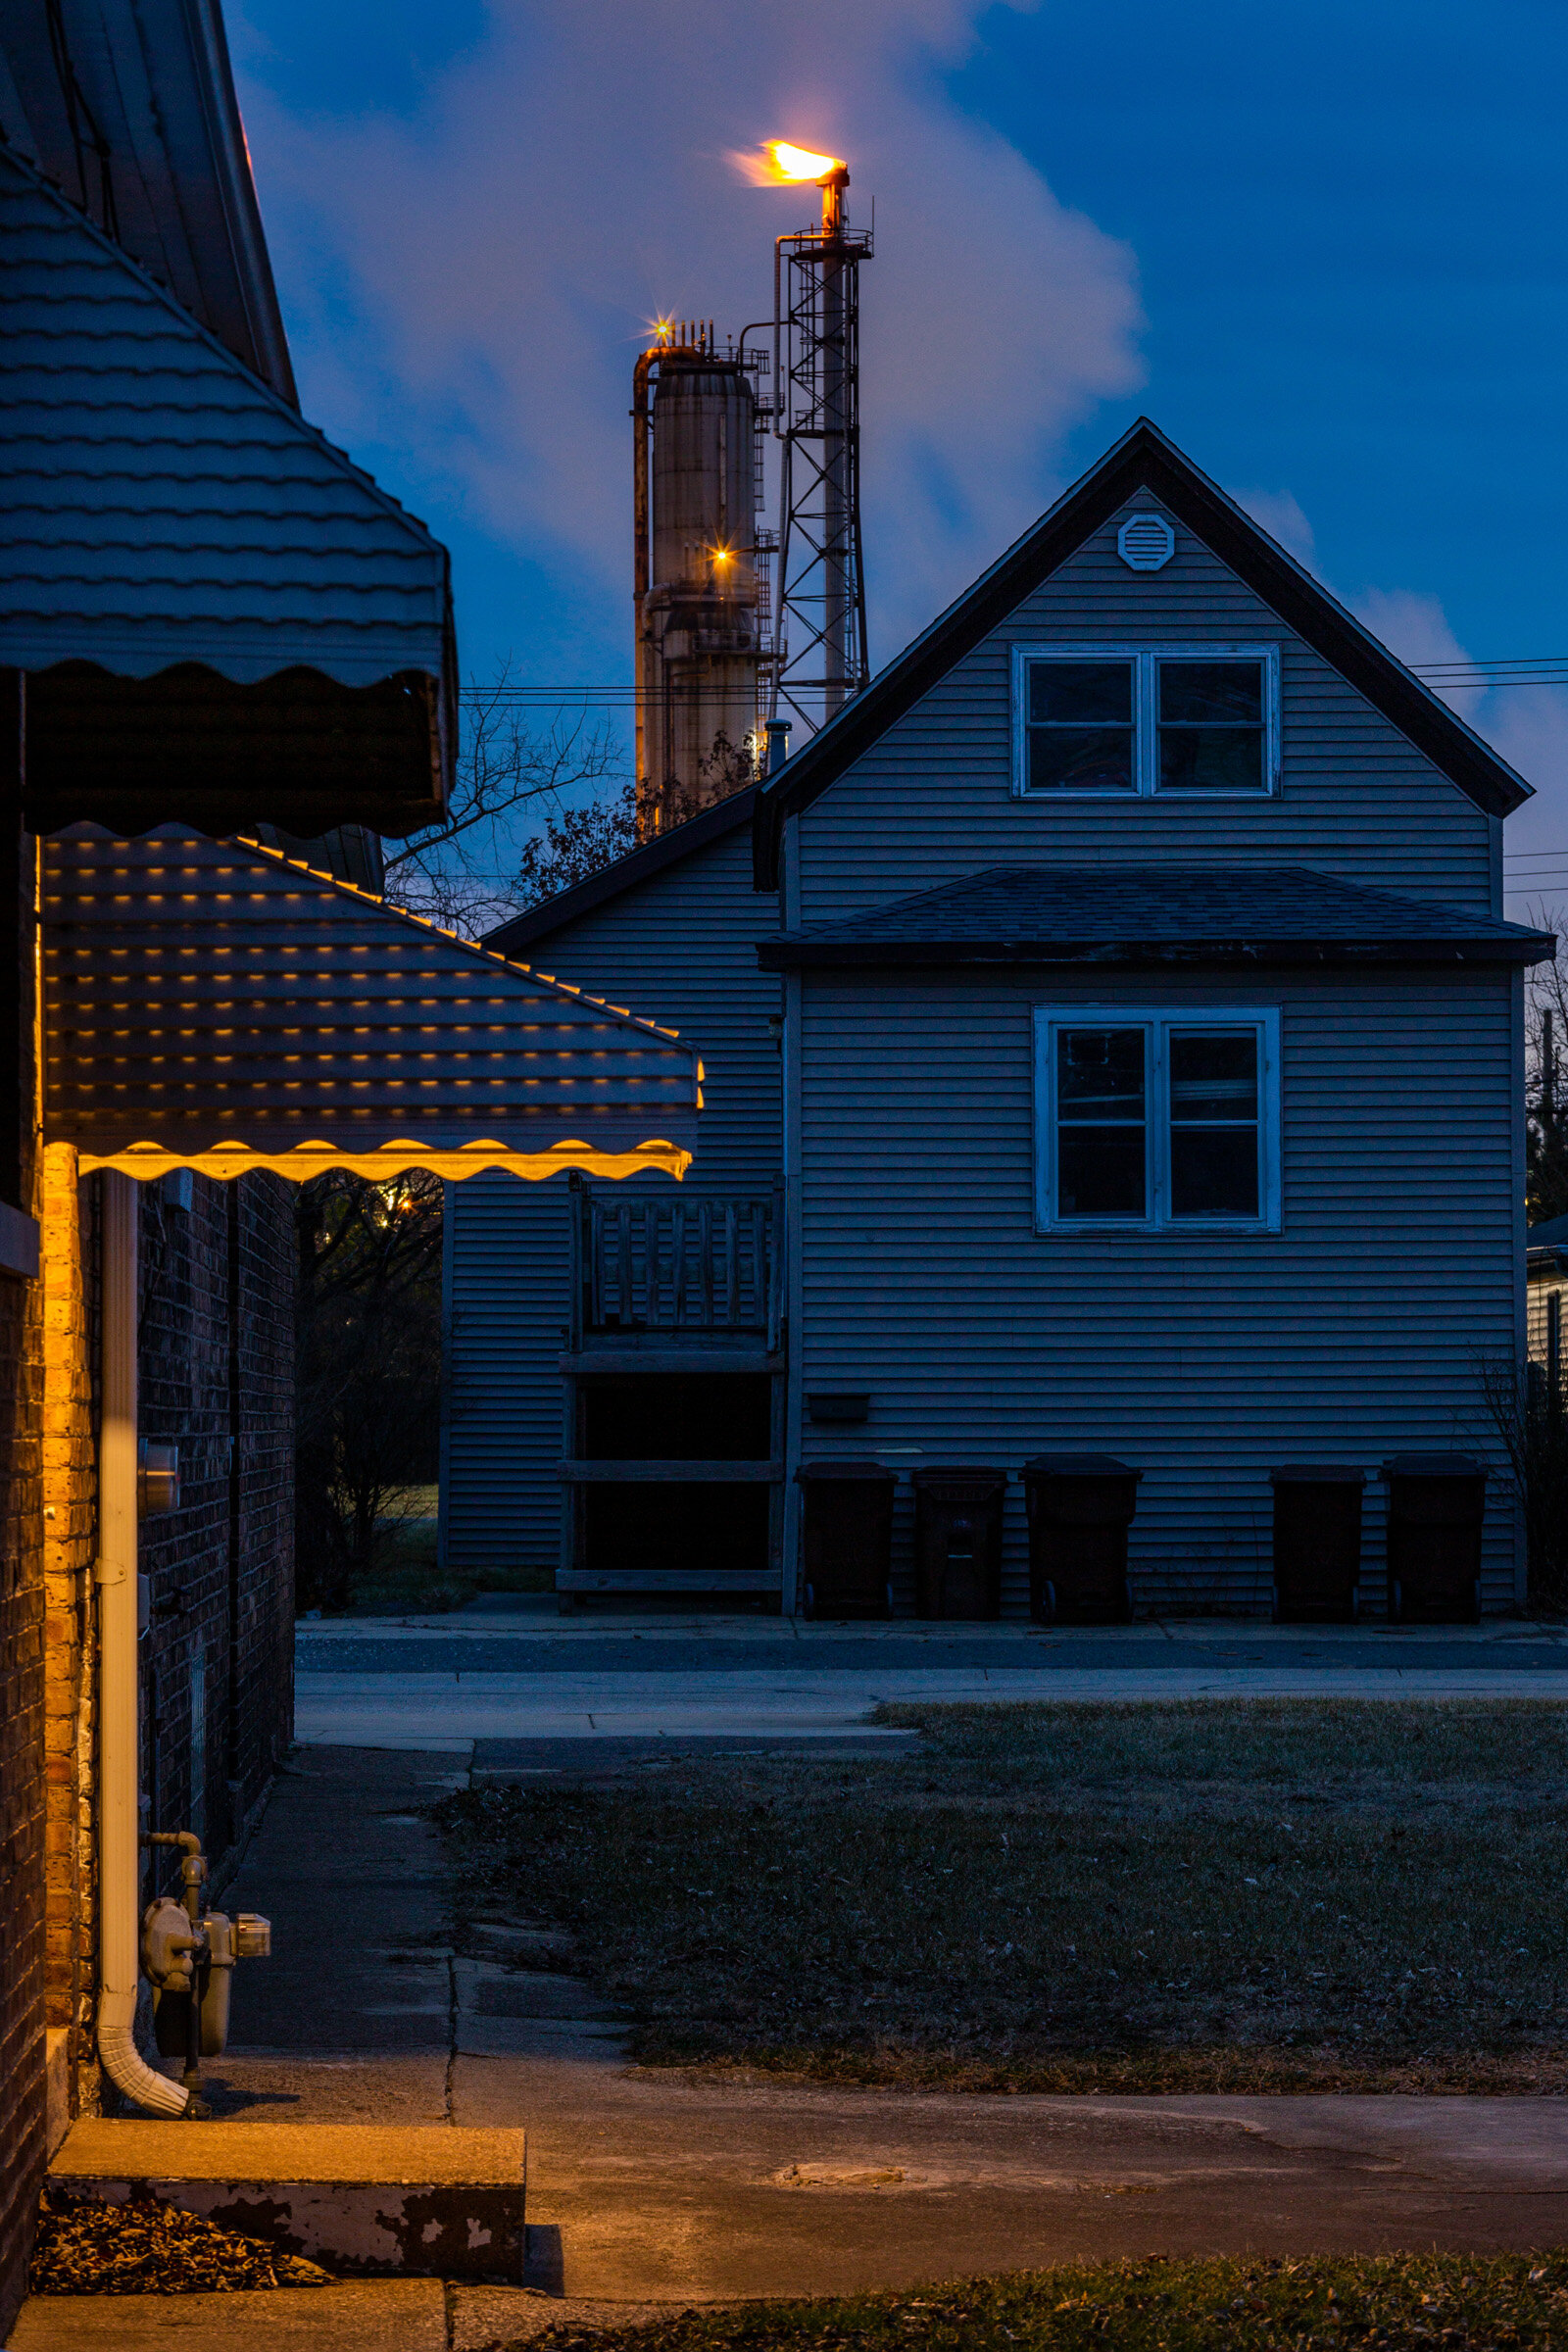 Figure 1. Whiting Refinery and Houses at Dusk, January 2019. Photograph by Matthew Kaplan.